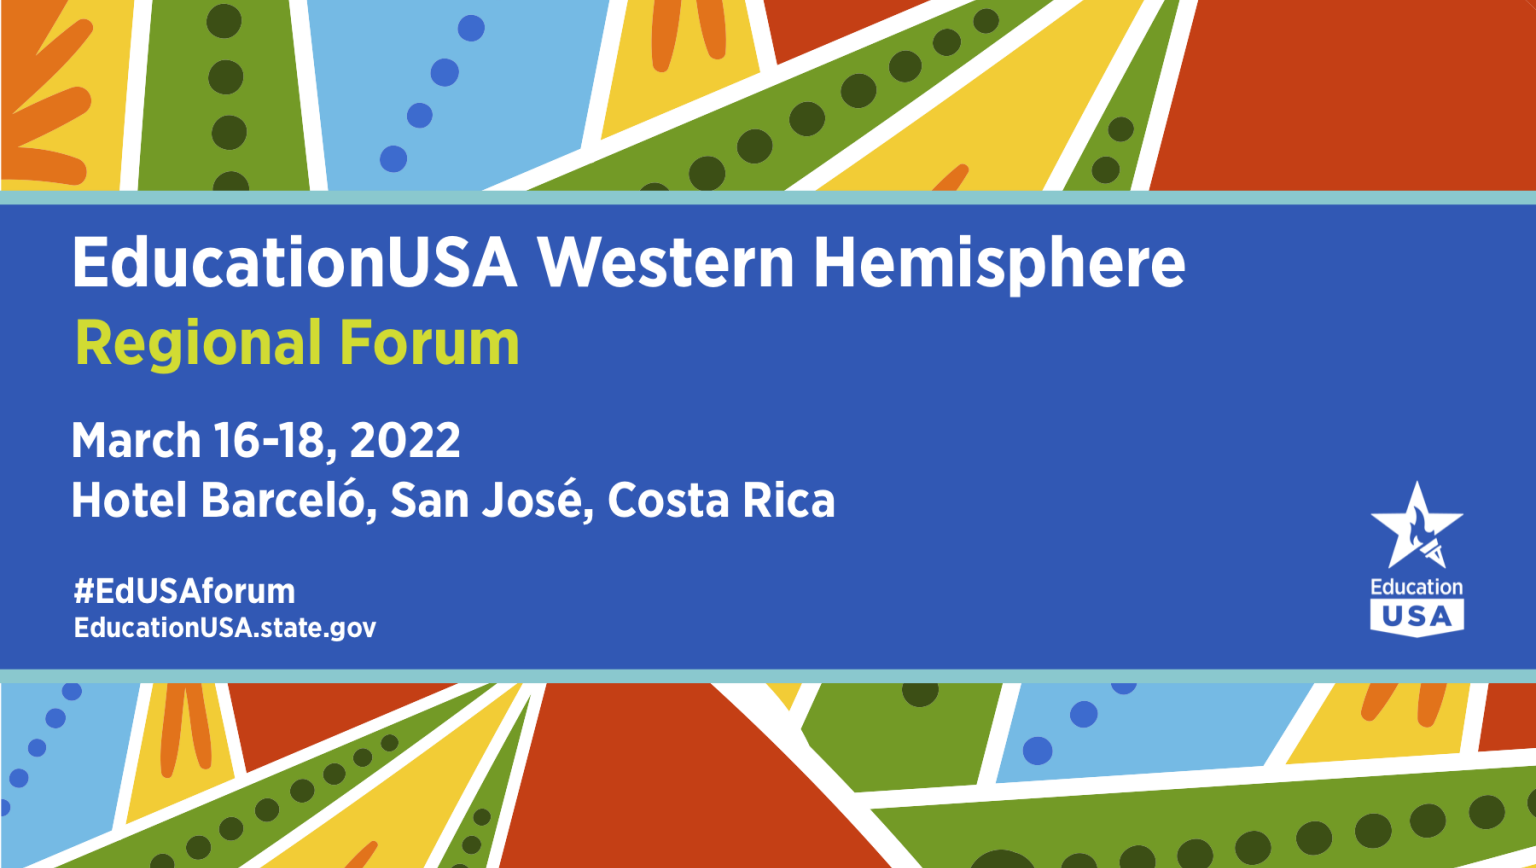 EducationUSA Western Hemisphere Regional Forum